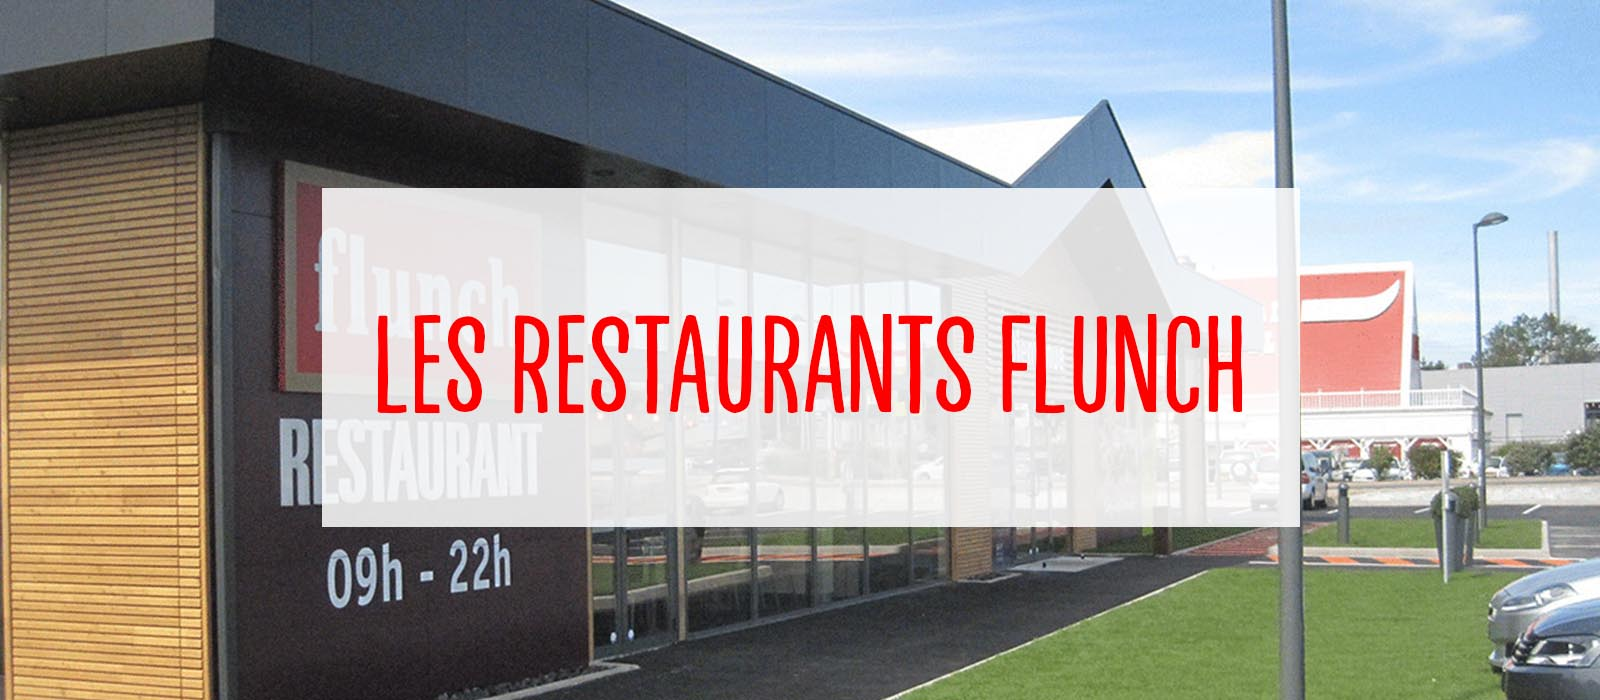 les restaurants flunch - flunch franchise